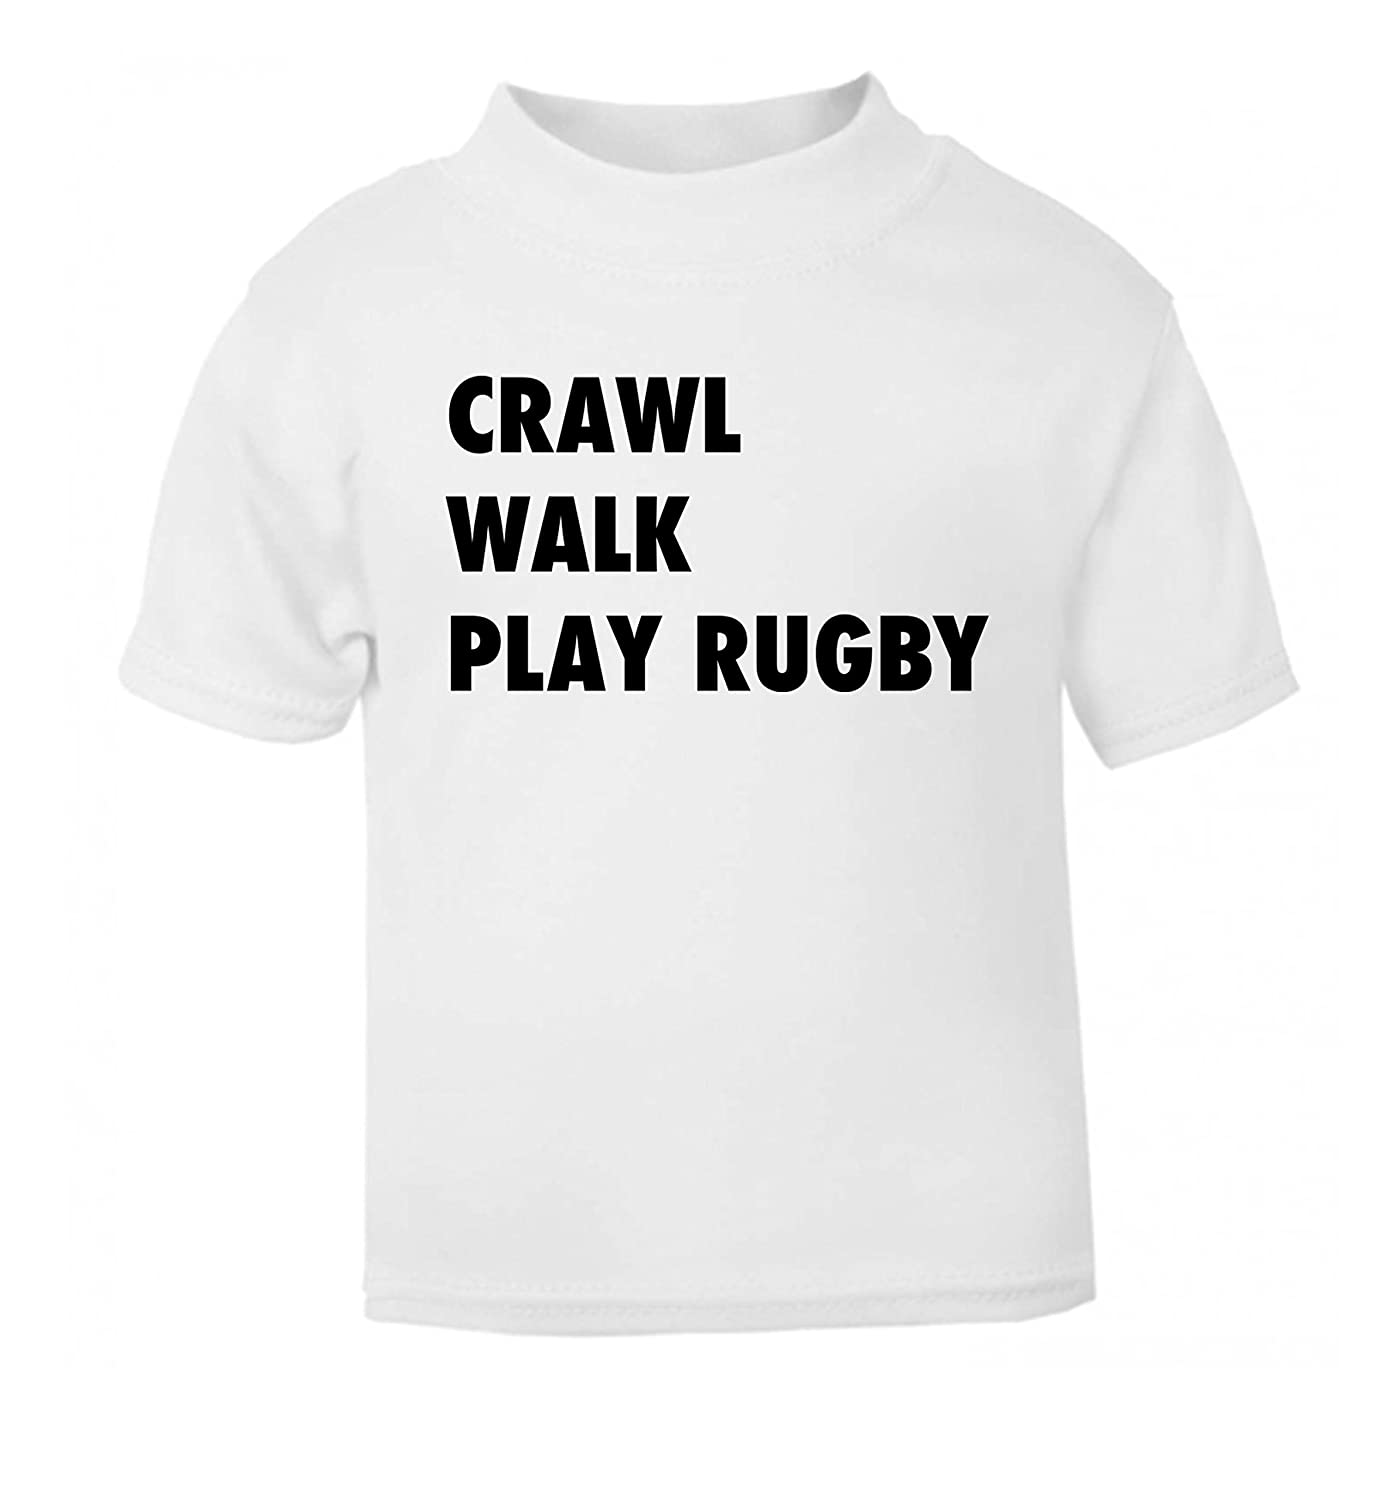 Flox Creative Baby T-Shirt Eat, Sleep, Play Rugby: Amazon.co.uk: Clothing